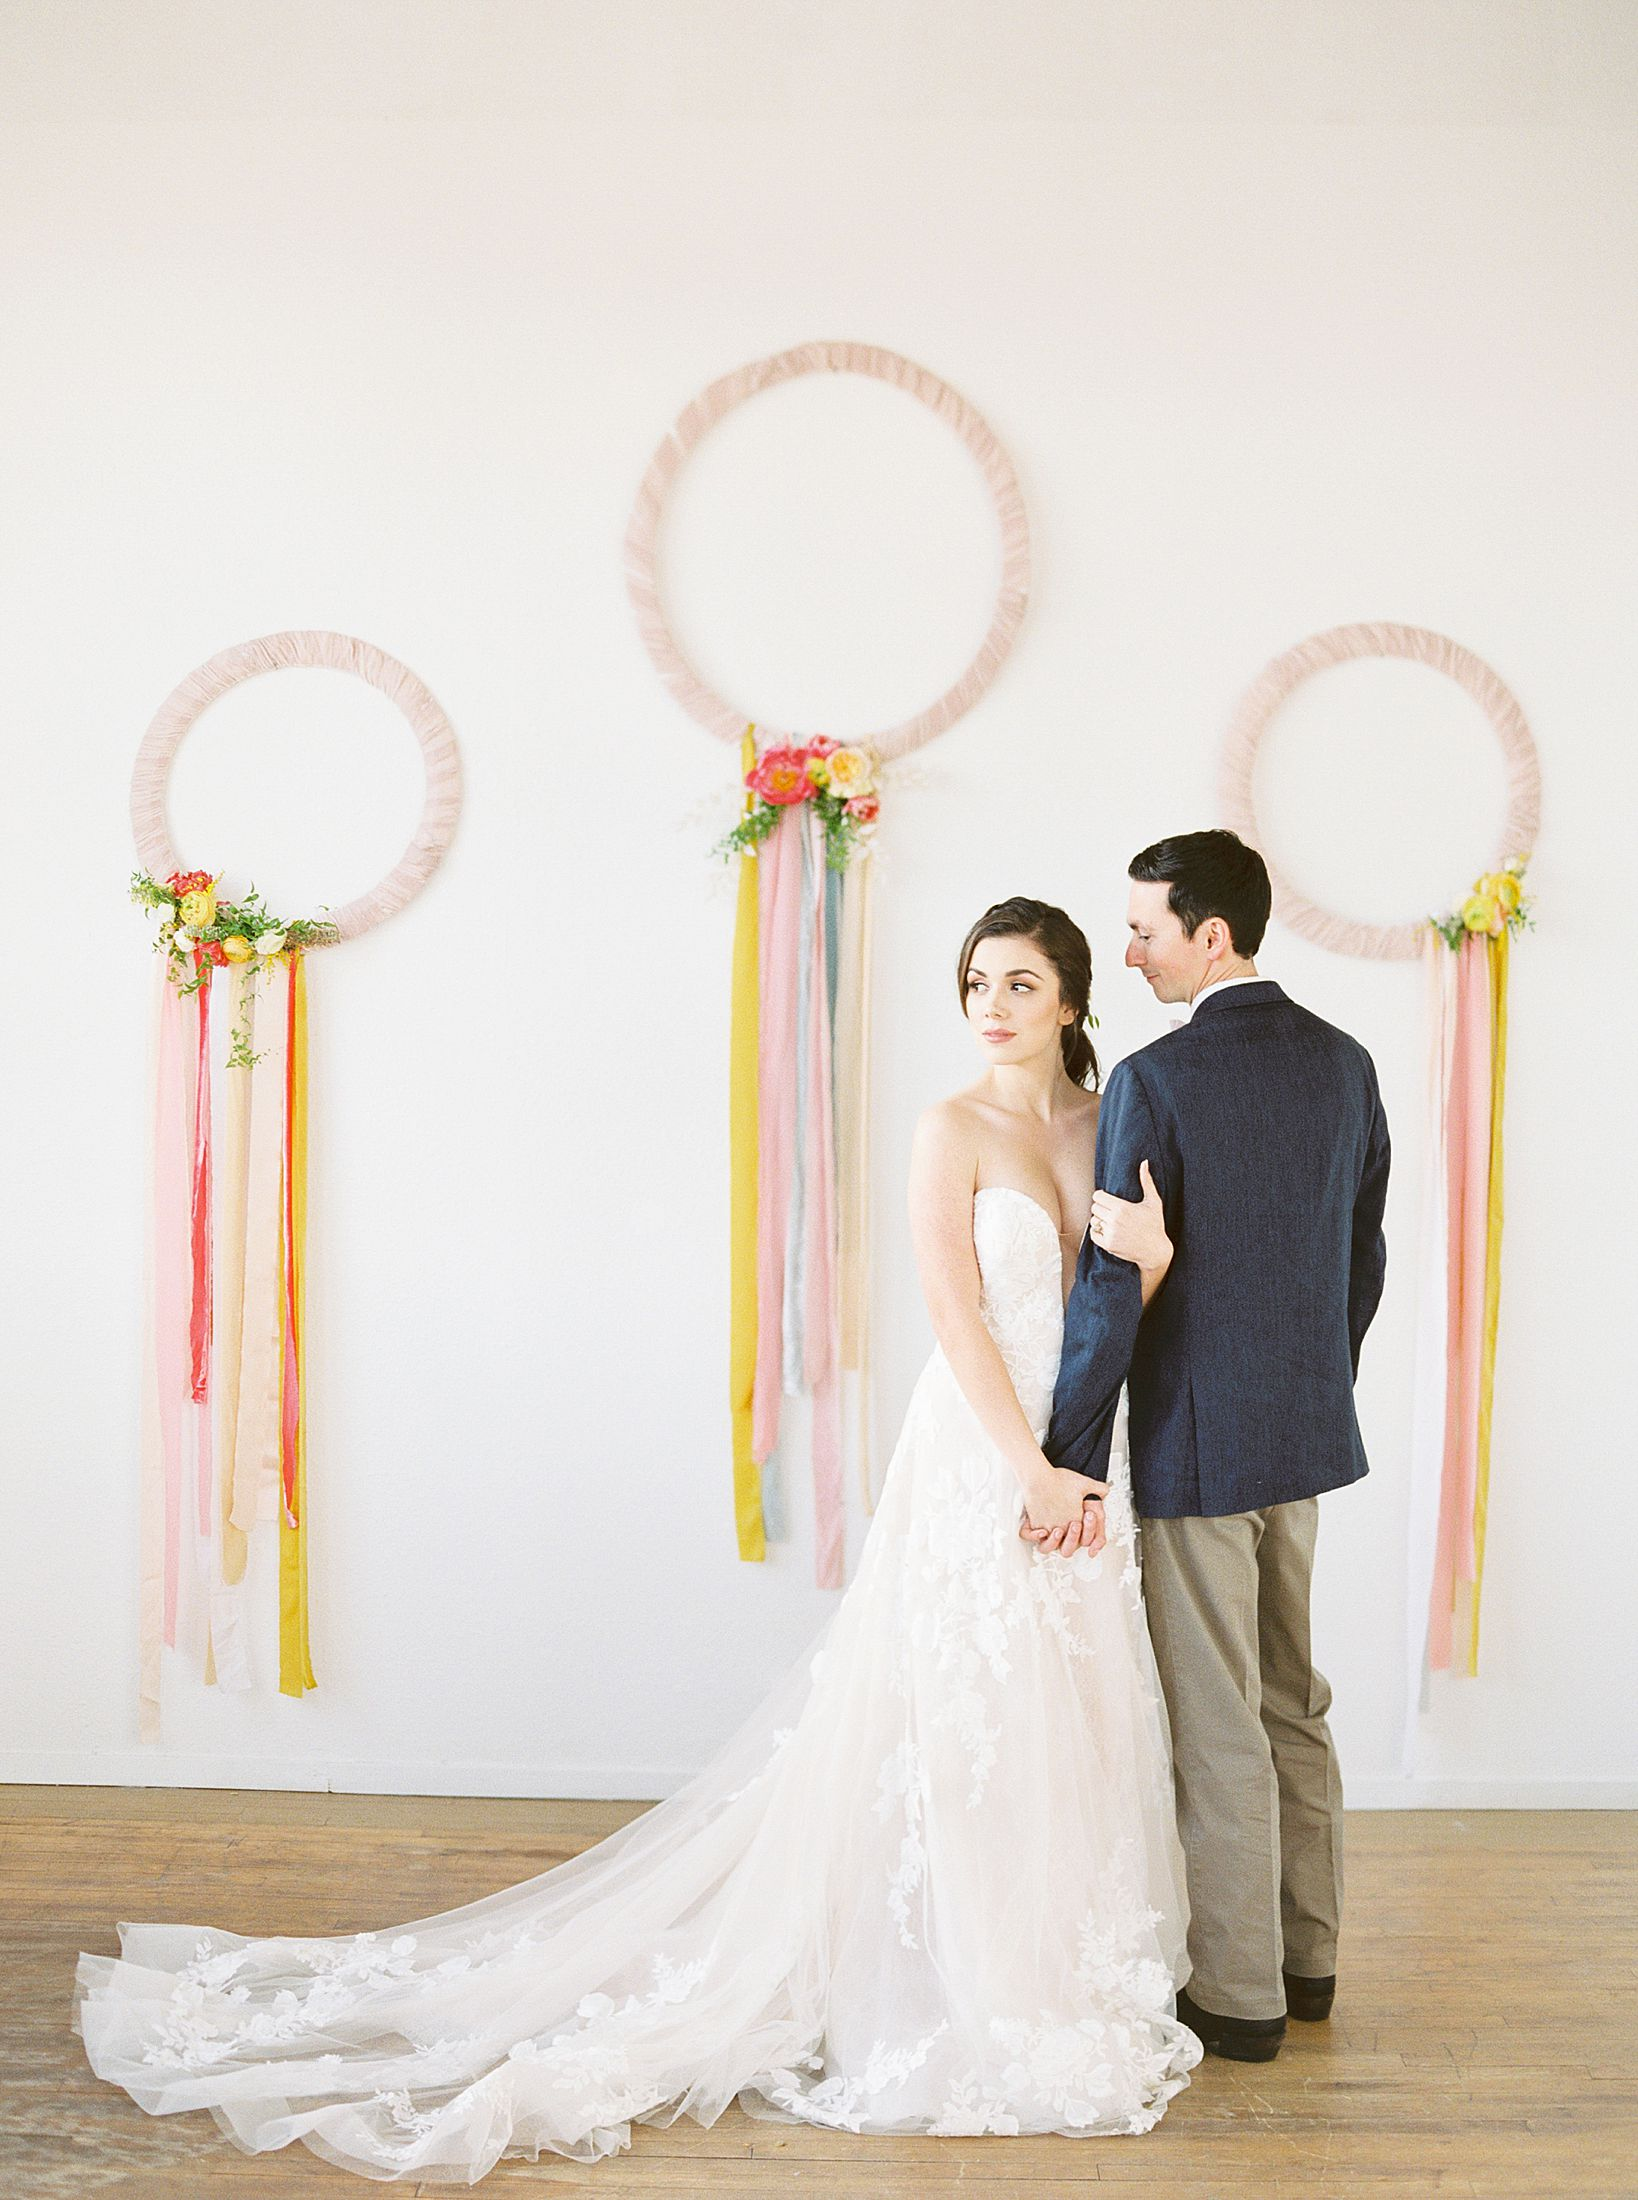 Bay Area Spring Wedding Inspiration - Ashley Baumgartner - Inspired By This - Party Crush Studio and Lens of Lenox Videography - Bay Area Wedding Photography_0014.jpg